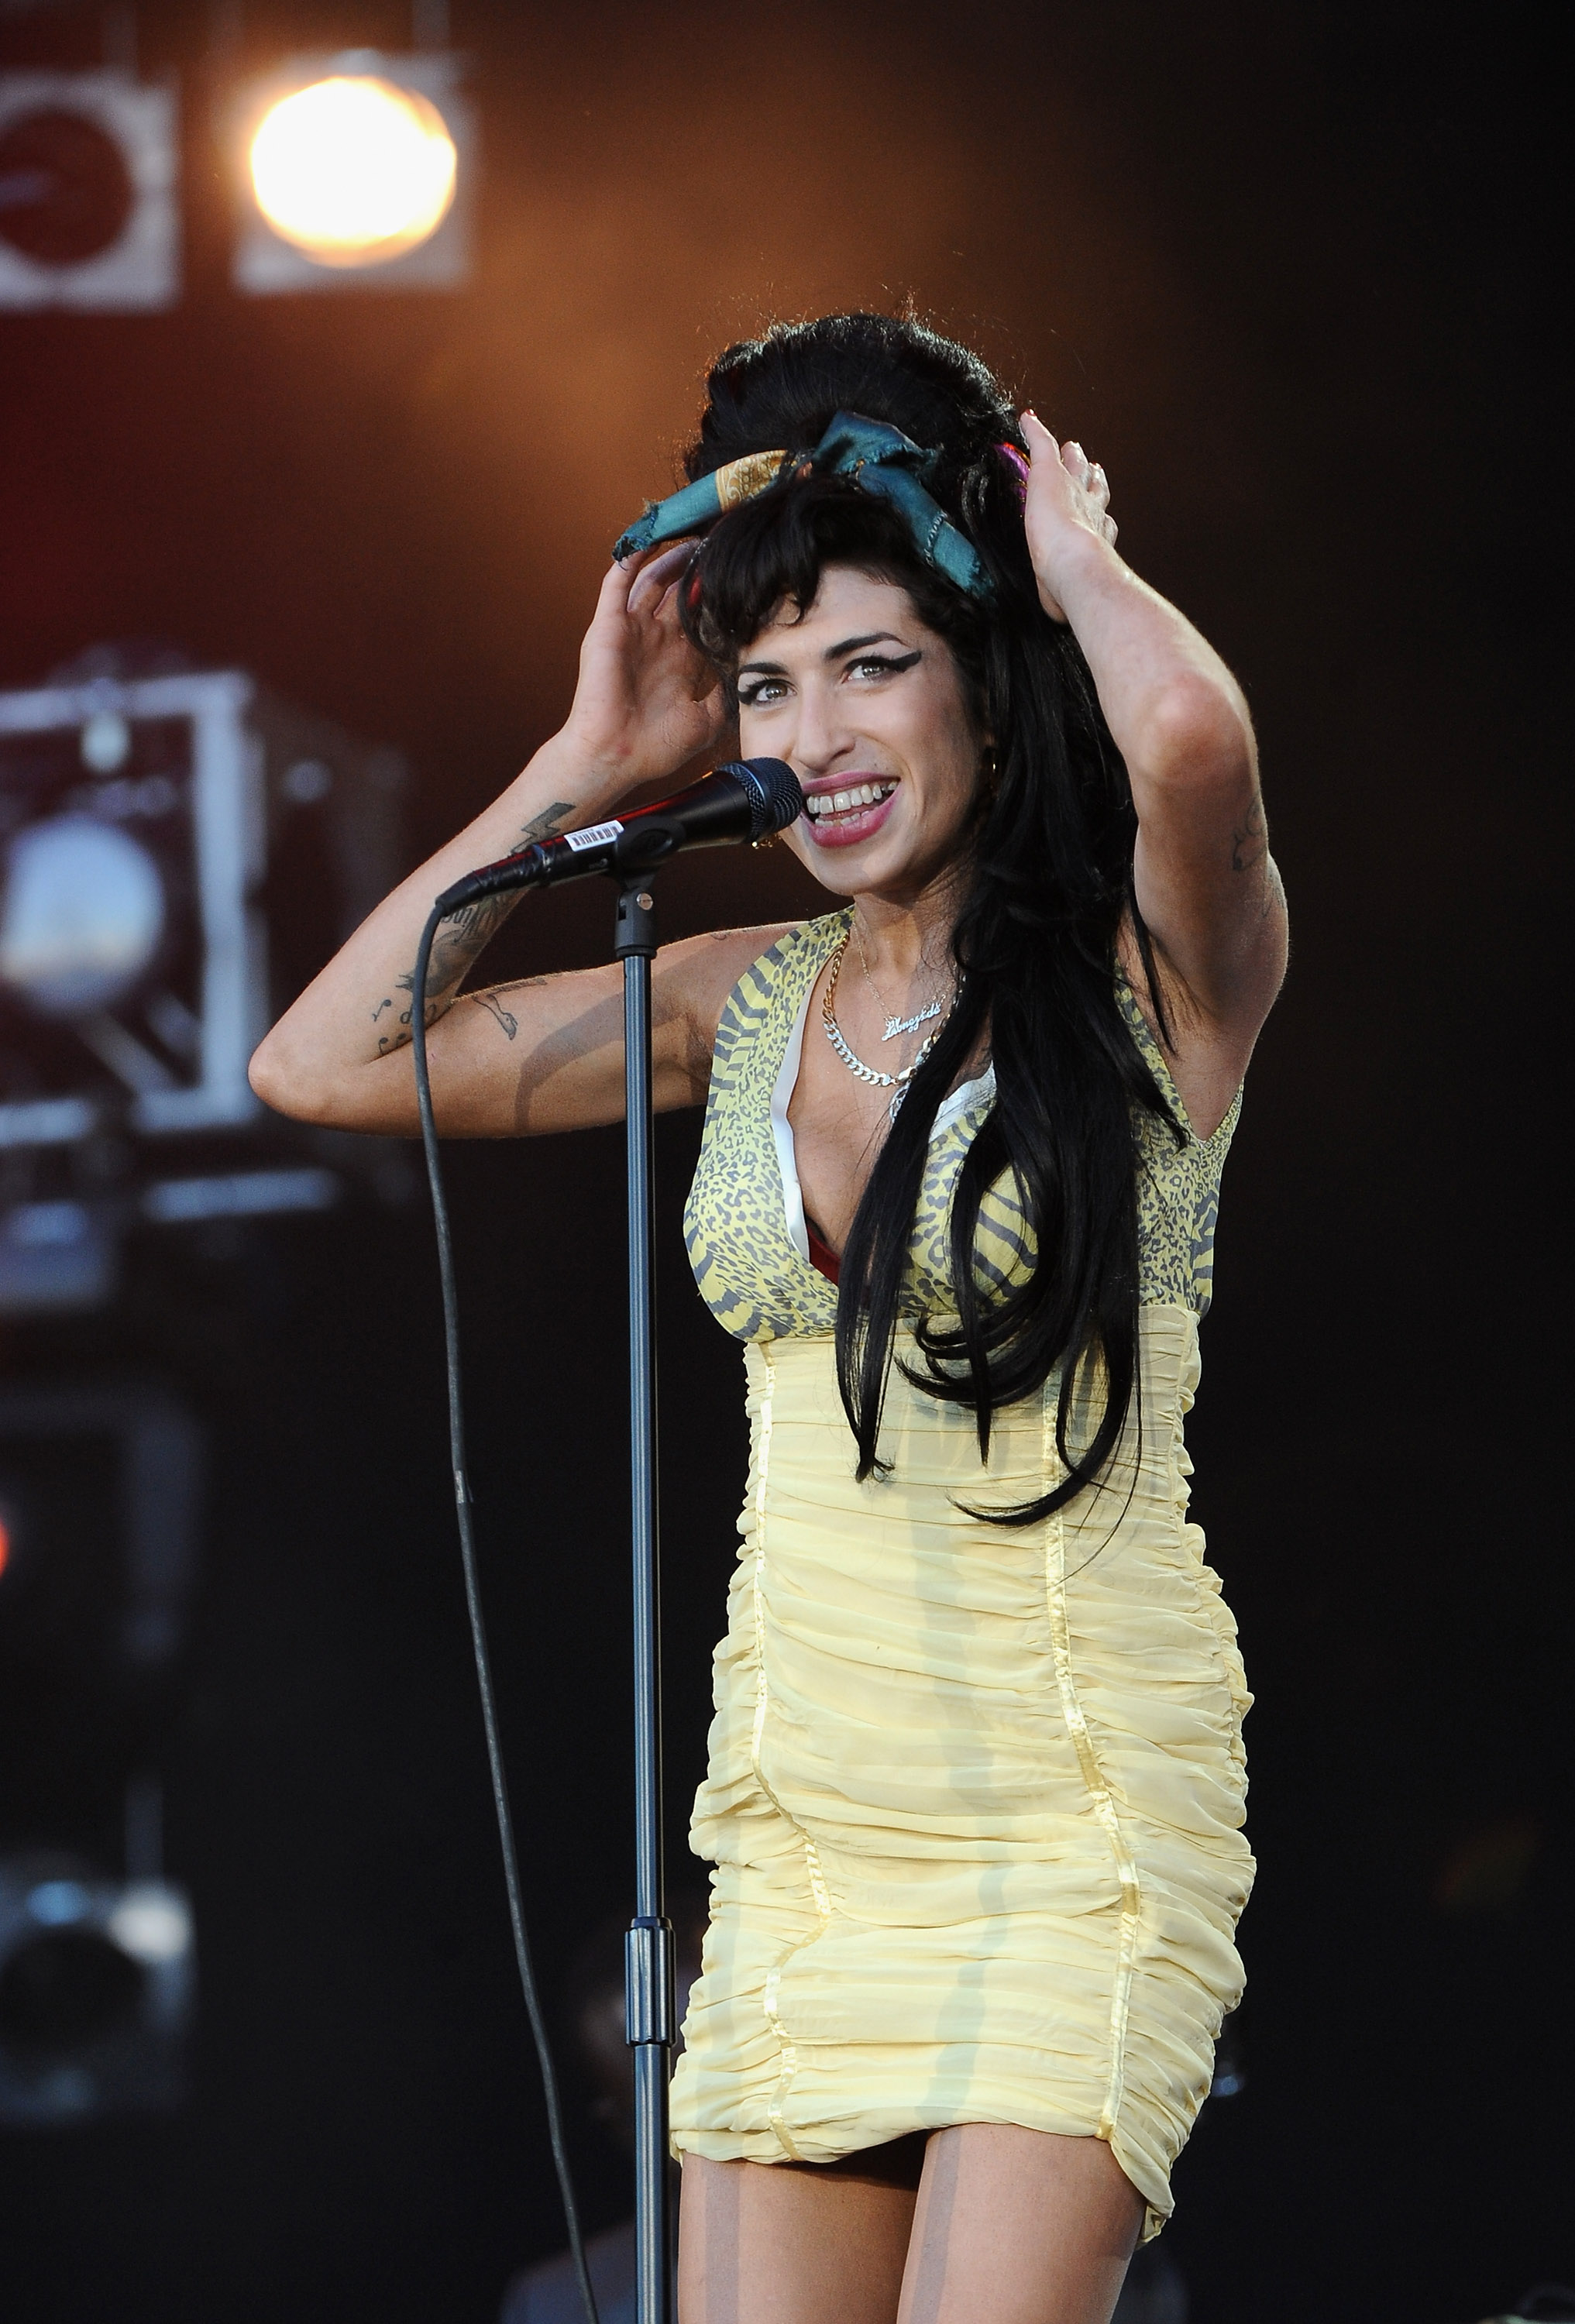 Amy Winehouses Beehive Eyeliner Were As Big And Beautiful As Her